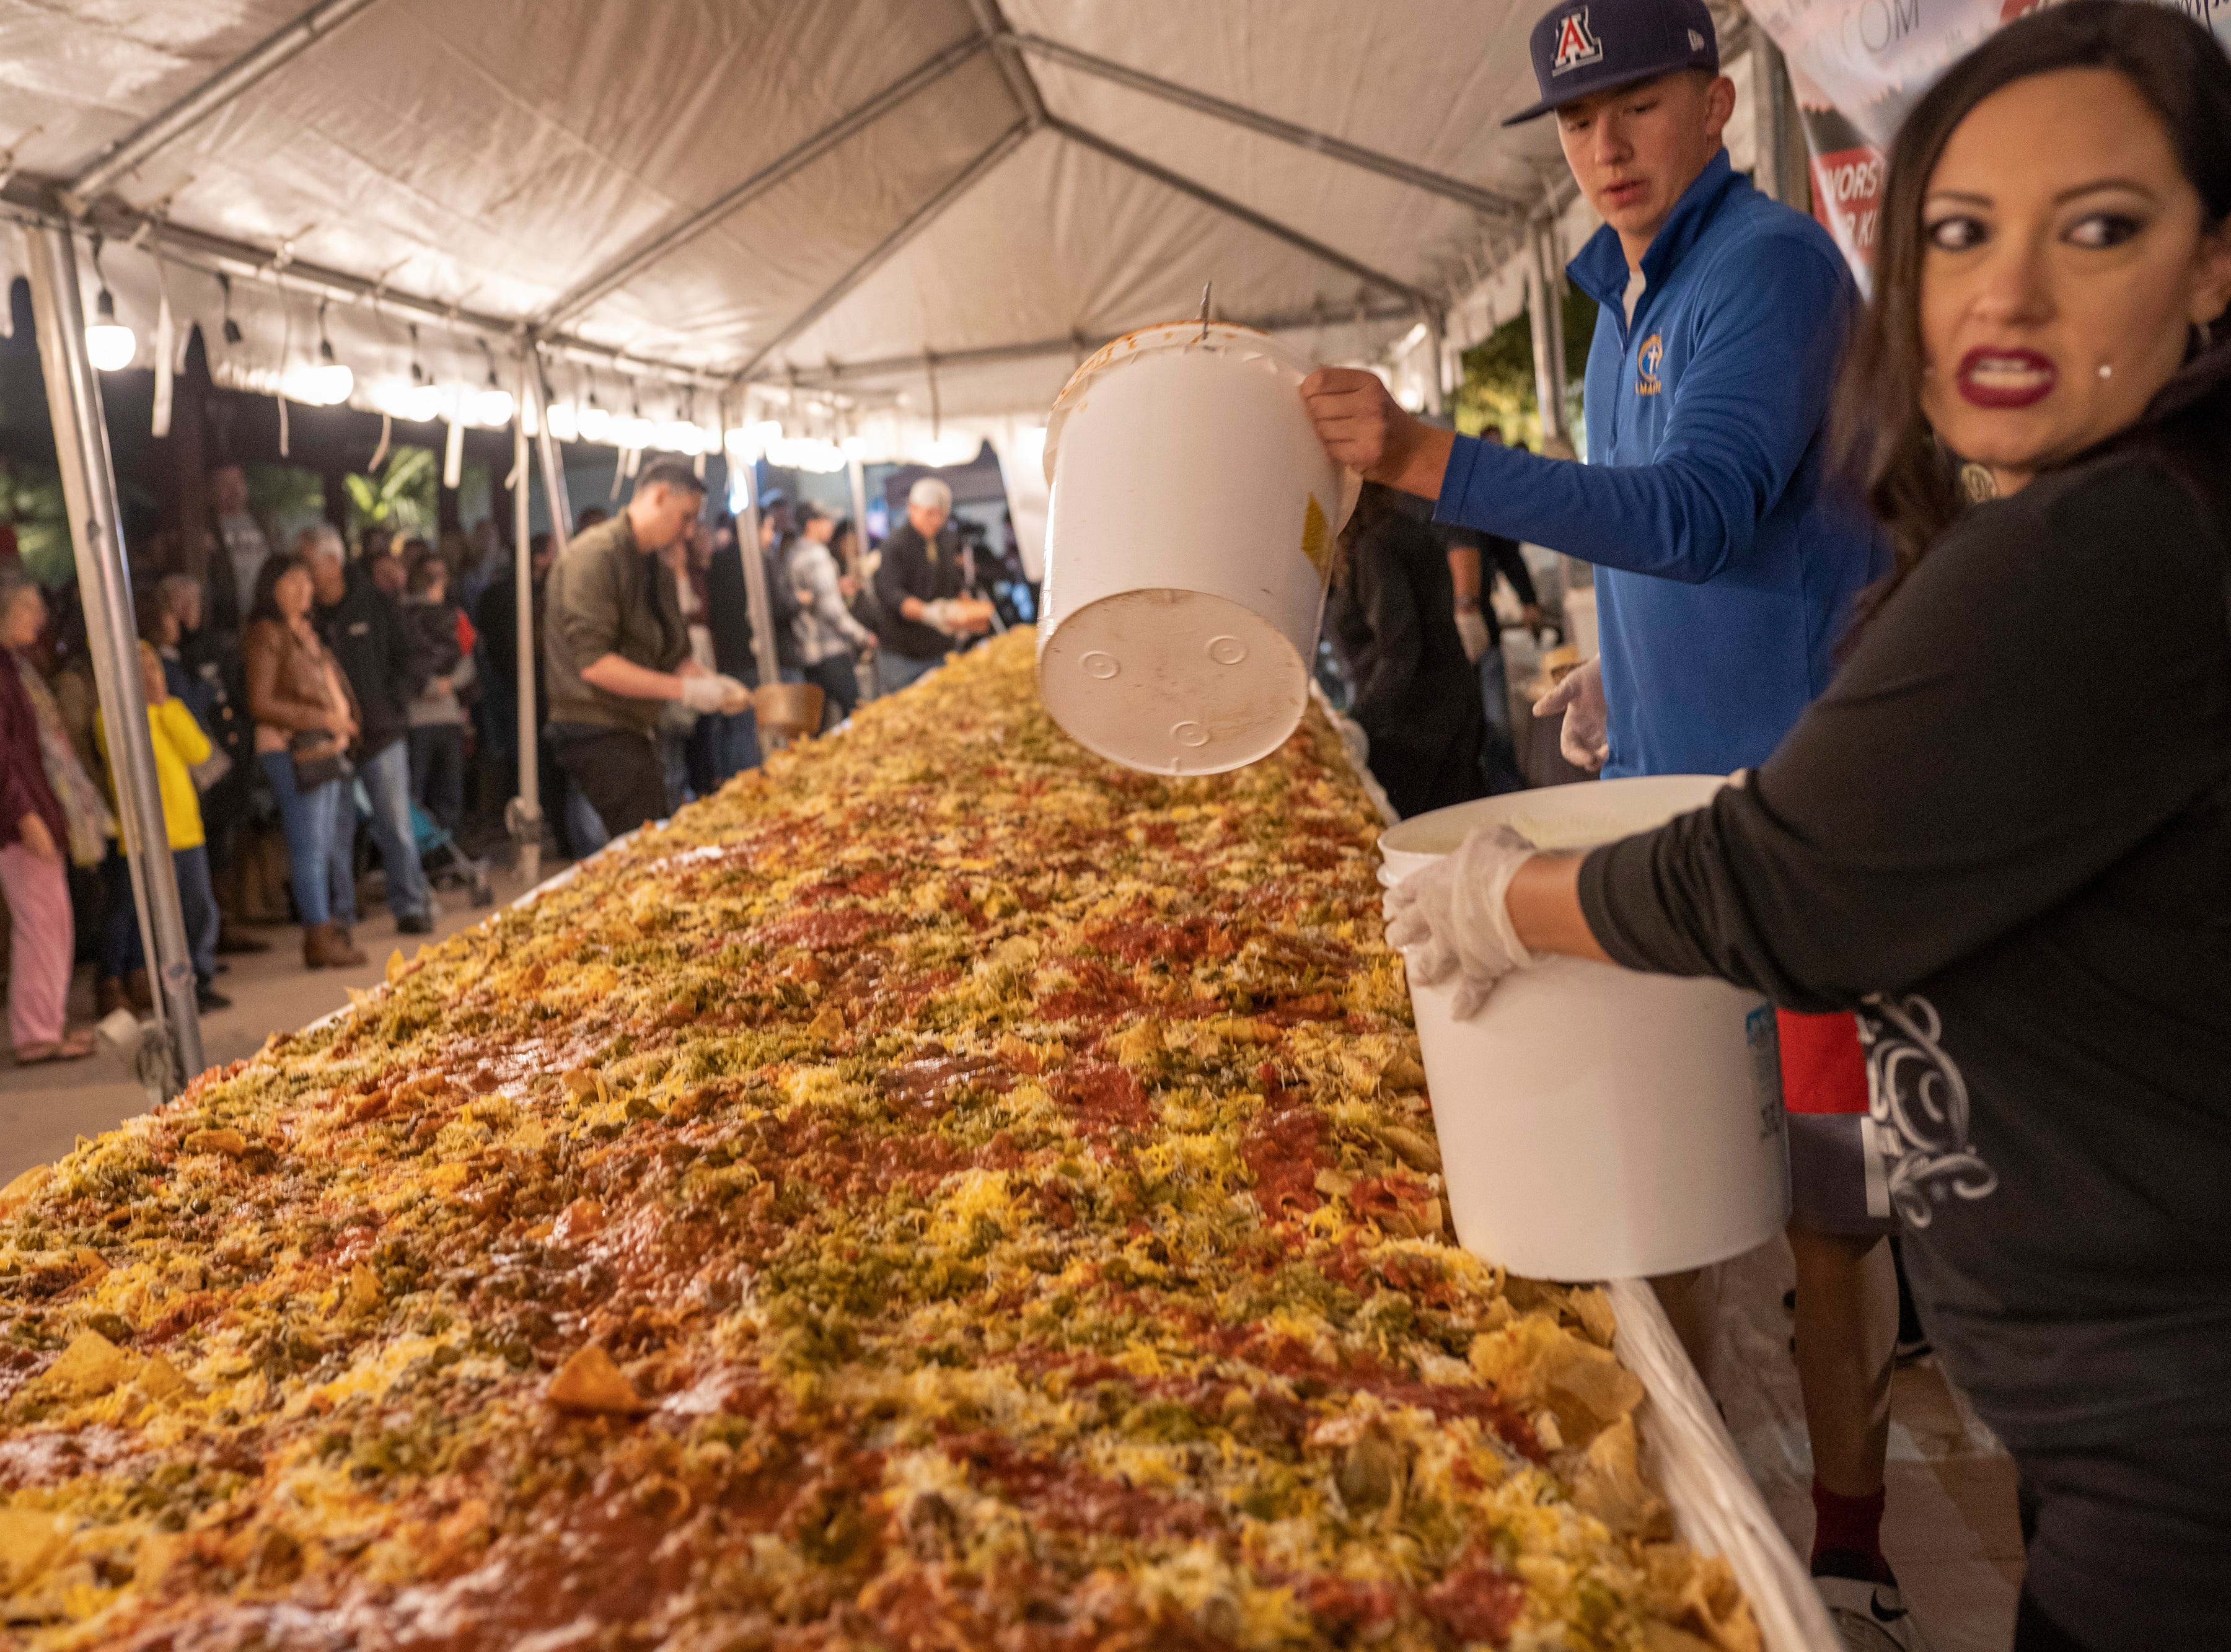 Dickerson's Catering employees put toppings on the gigantic platter of nachos at Noche de Nachos. Las Cruces unofficially set the record for world's largest serving of nachos Saturday, Nov. 10, 2018, in downtown Las Cruces.